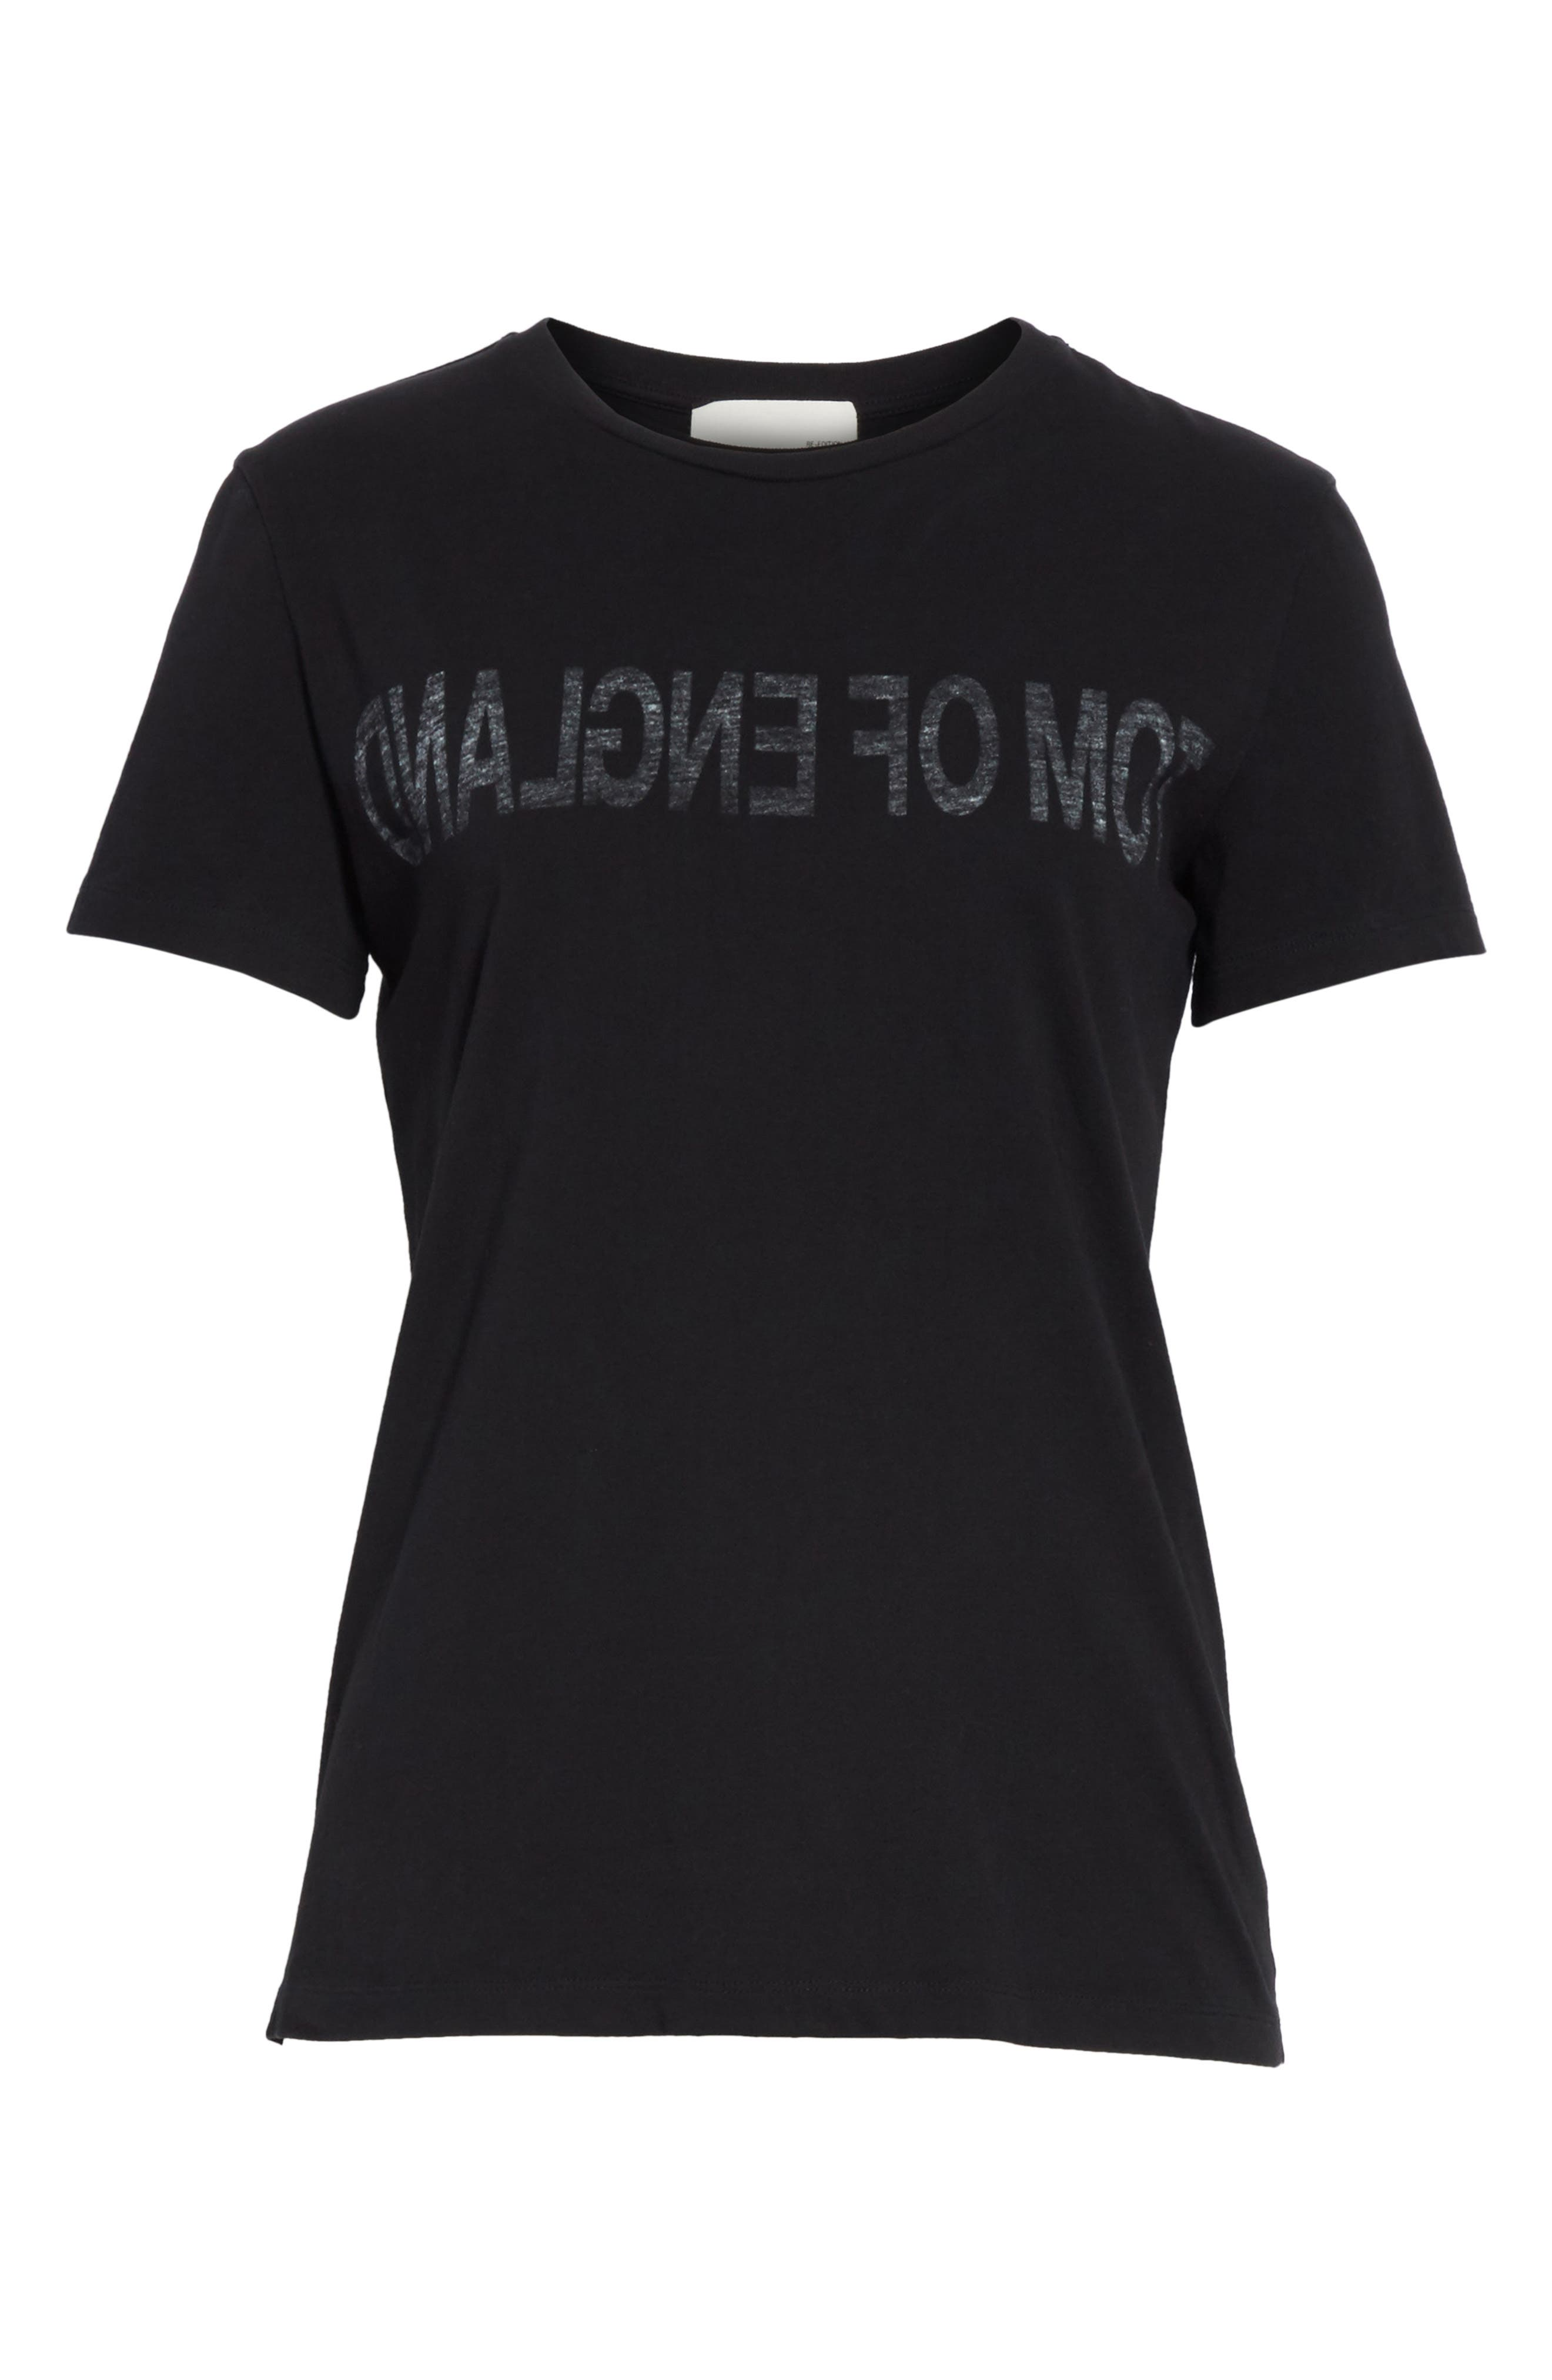 Re-Edition Tom of England Tee,                             Alternate thumbnail 6, color,                             Black